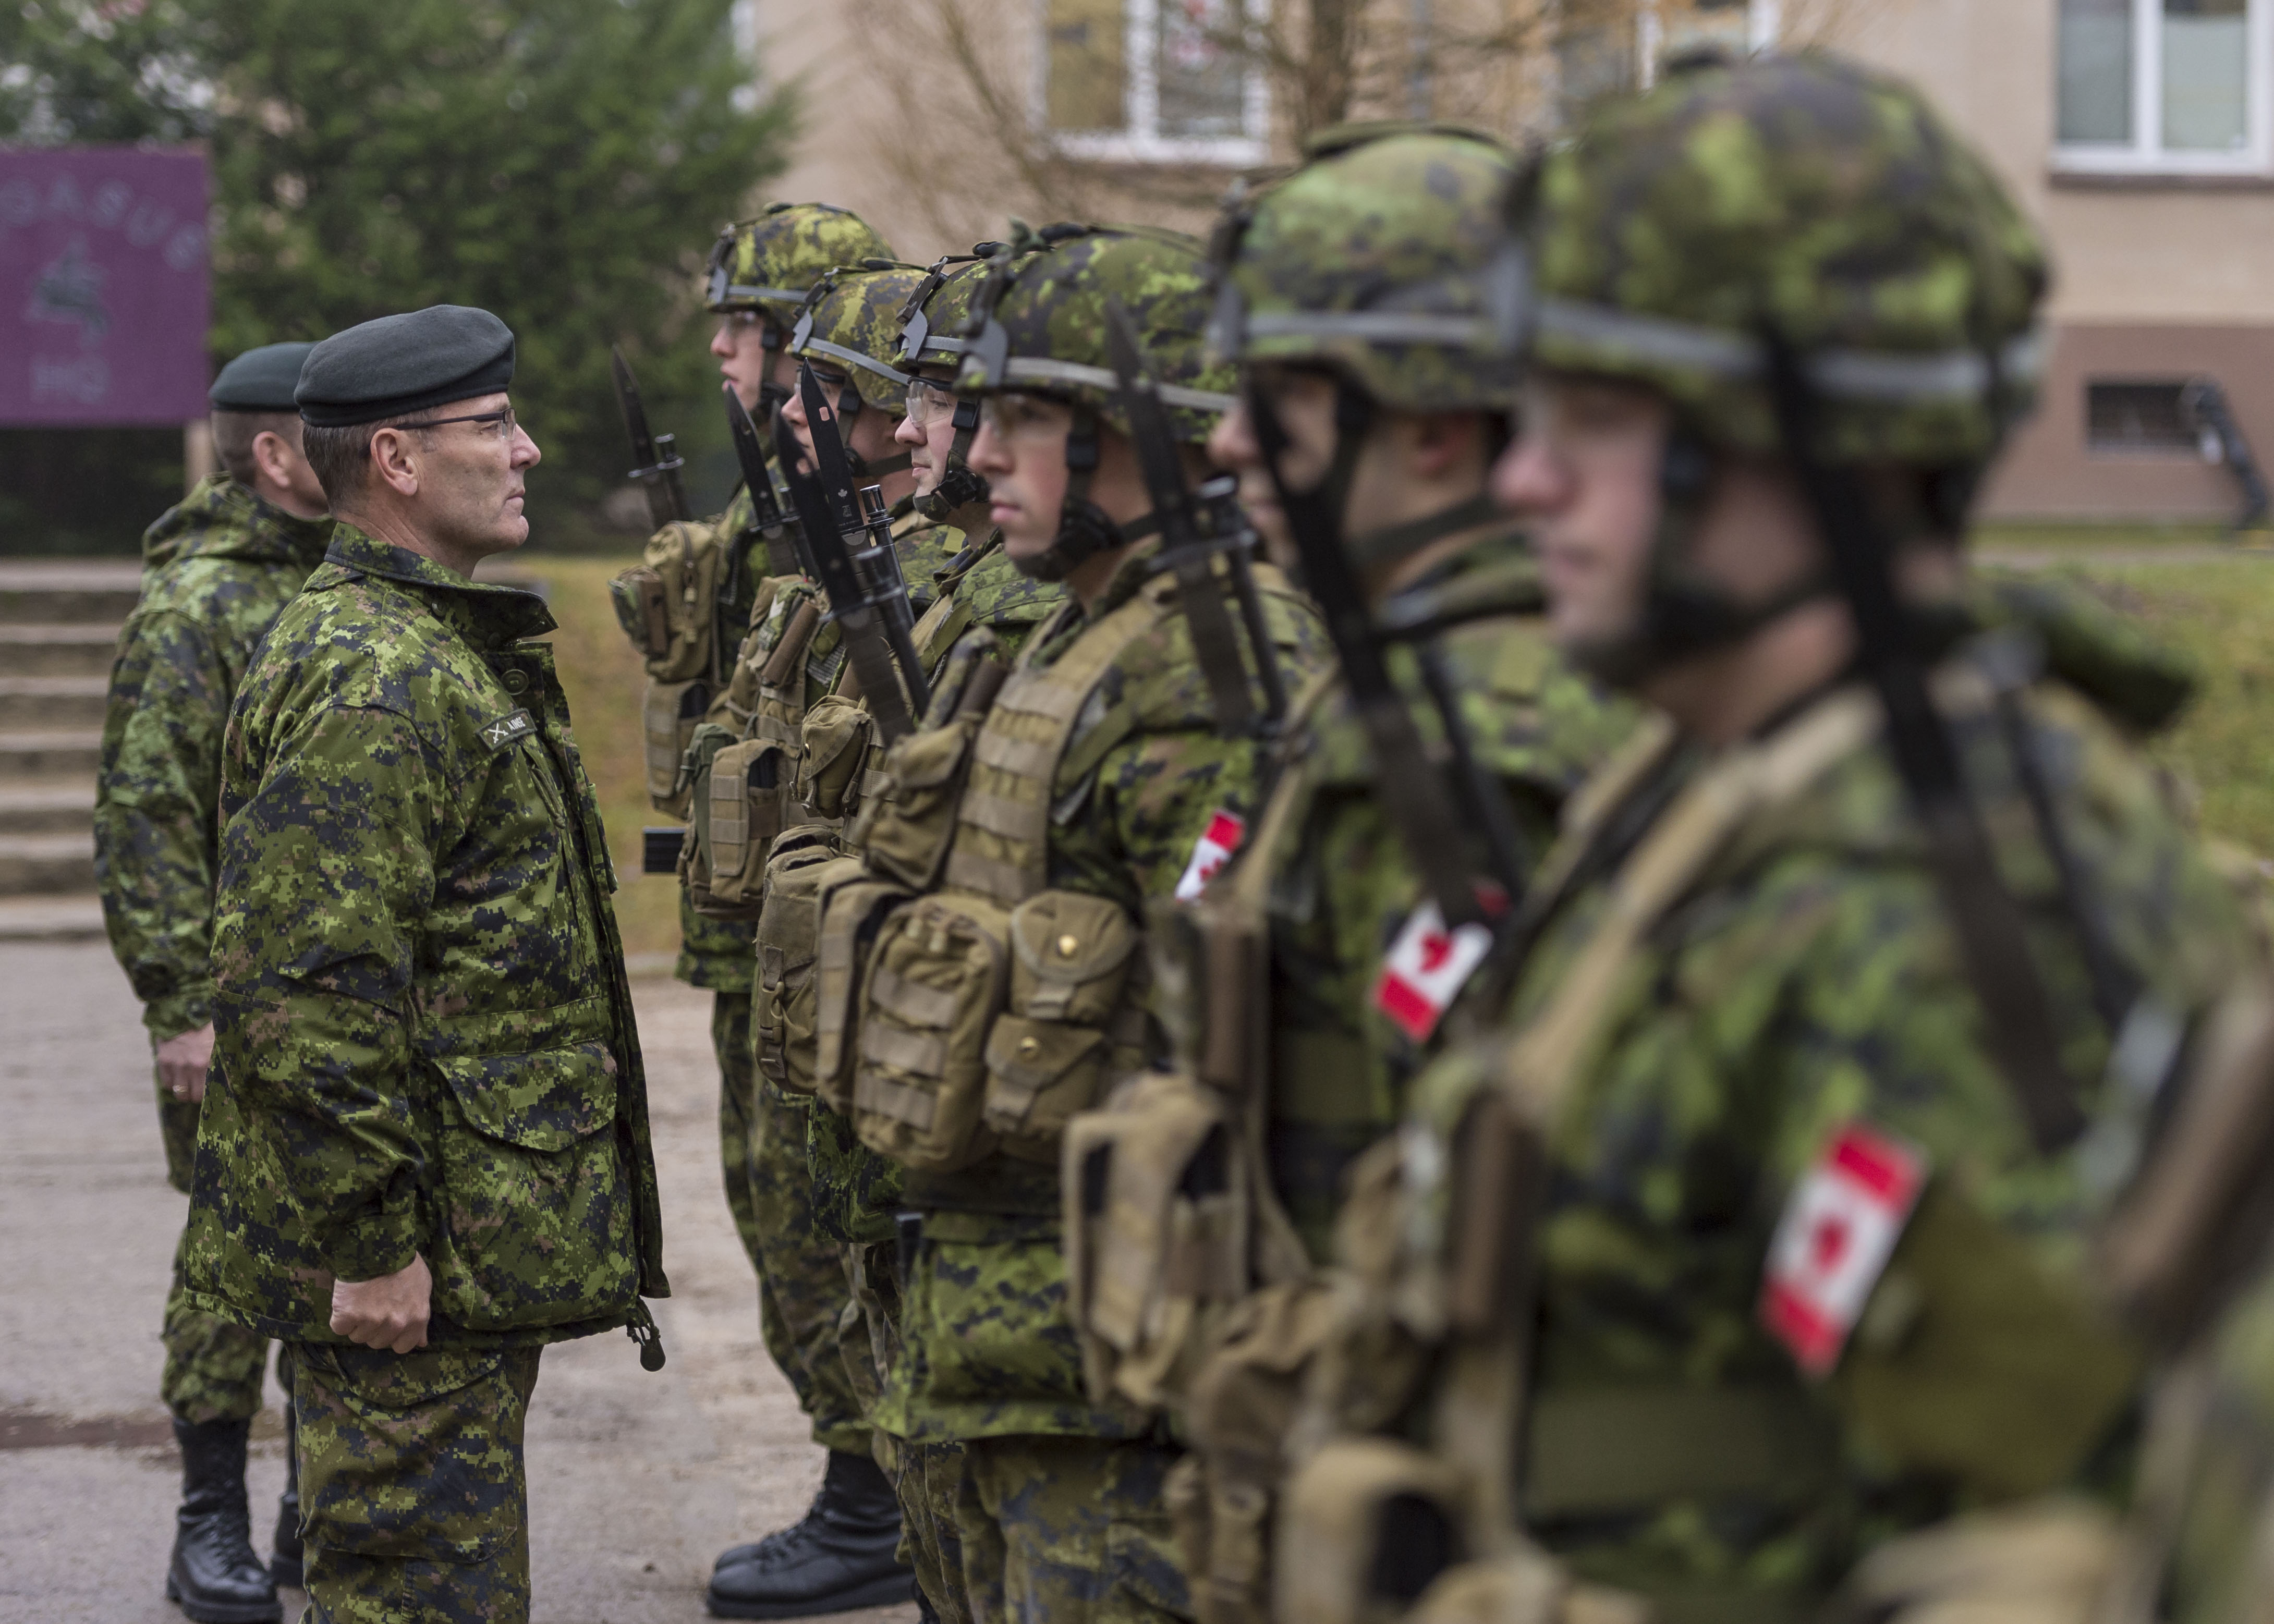 Lieutenant-General Marquis Hainse, Commander Canadian Army, inspects the troops during a visit to Glebokie, Poland on December 16, 2015 during Operation REASSURANCE. LGen Hainse said this week he welcomes recommendations from the Auditor General of Canada on ways to improve how the Army Reserve is funded, recruited, trained, and equipped.